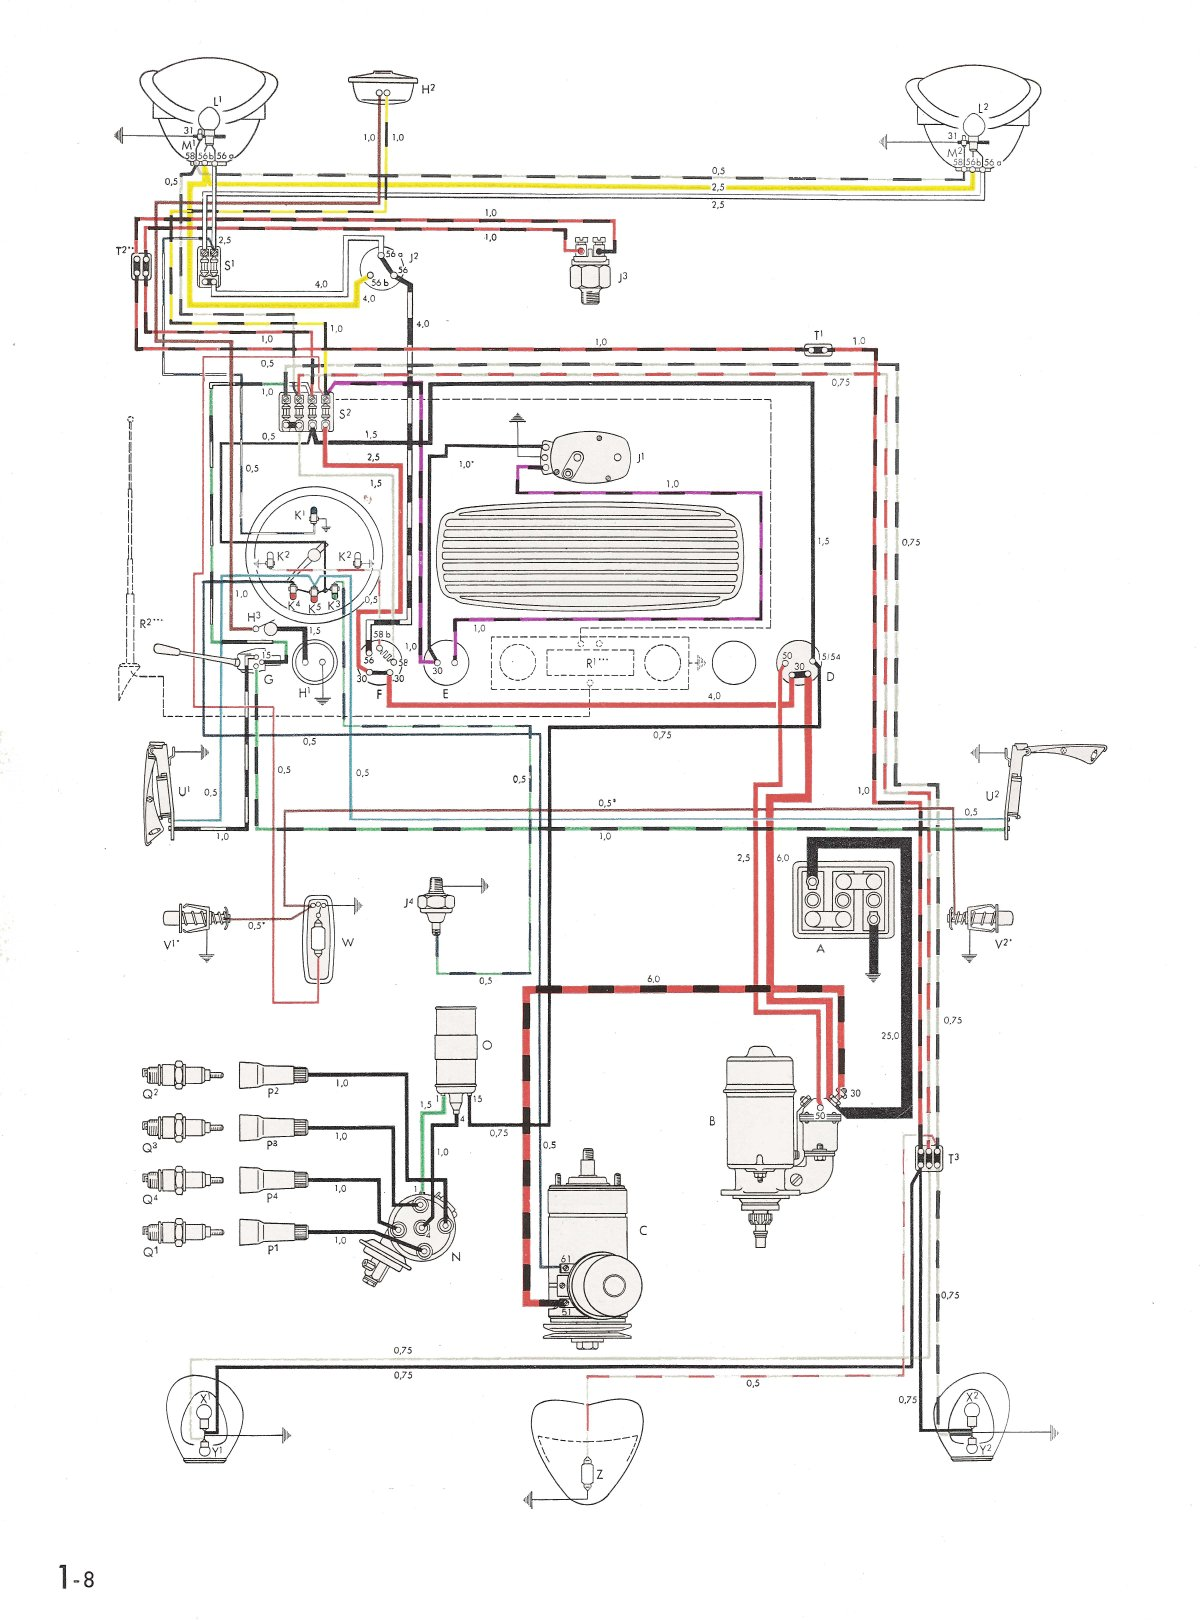 1 wire alternator wiring diagram for 1970 chevy truck wiring library1 Wire Alternator Wiring Diagram For